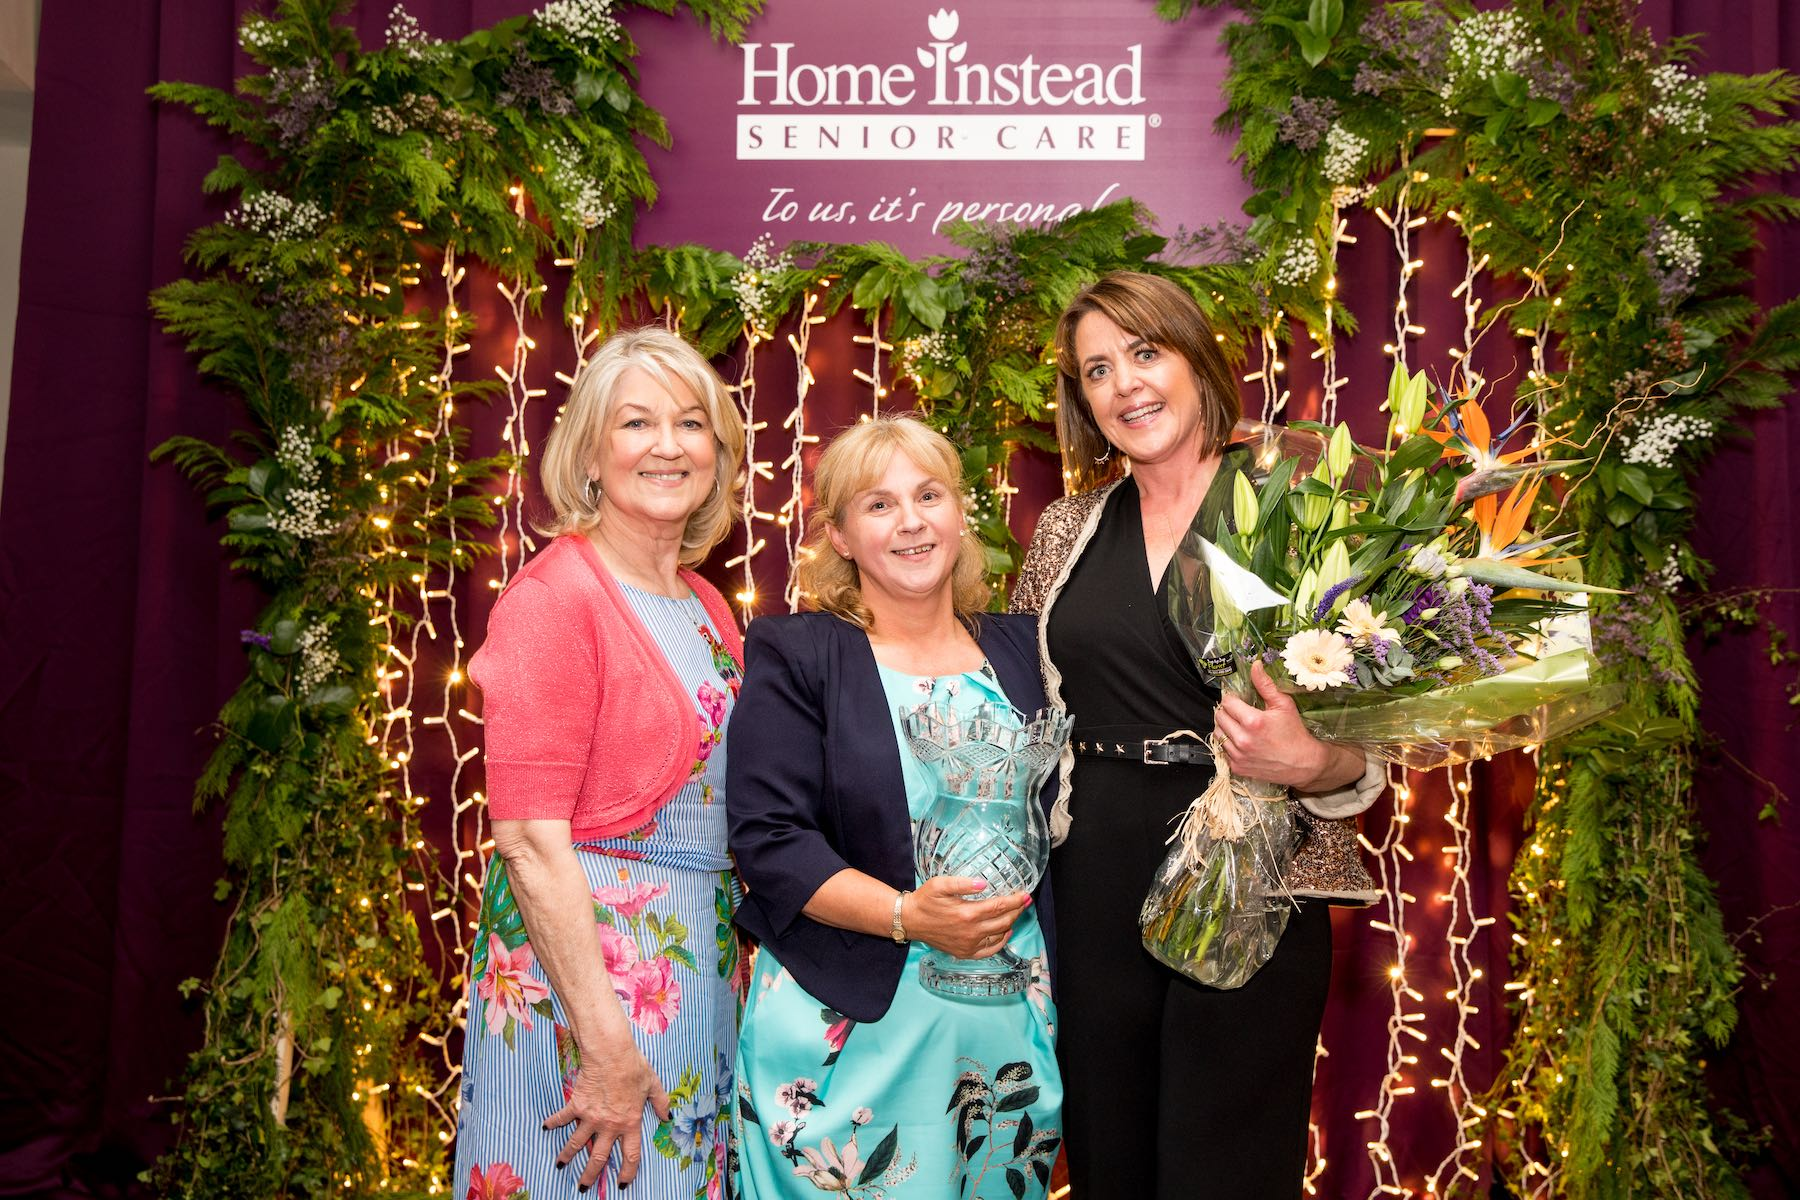 L-R: Home Instead Brand Ambassador Thelma Mansfield with Bridget O Callaghan, National and Leinster CAREGiver of the Year 2019, and Amanda Bohan, Owner, Home Instead Senior Care Kildare, at Home Instead's CAREGiver of the Year Awards at the Royal Marine Hotel in Dún Laoghaire, Co Dublin, on Saturday May 18, 2019. Photo Credit: Conor Healy